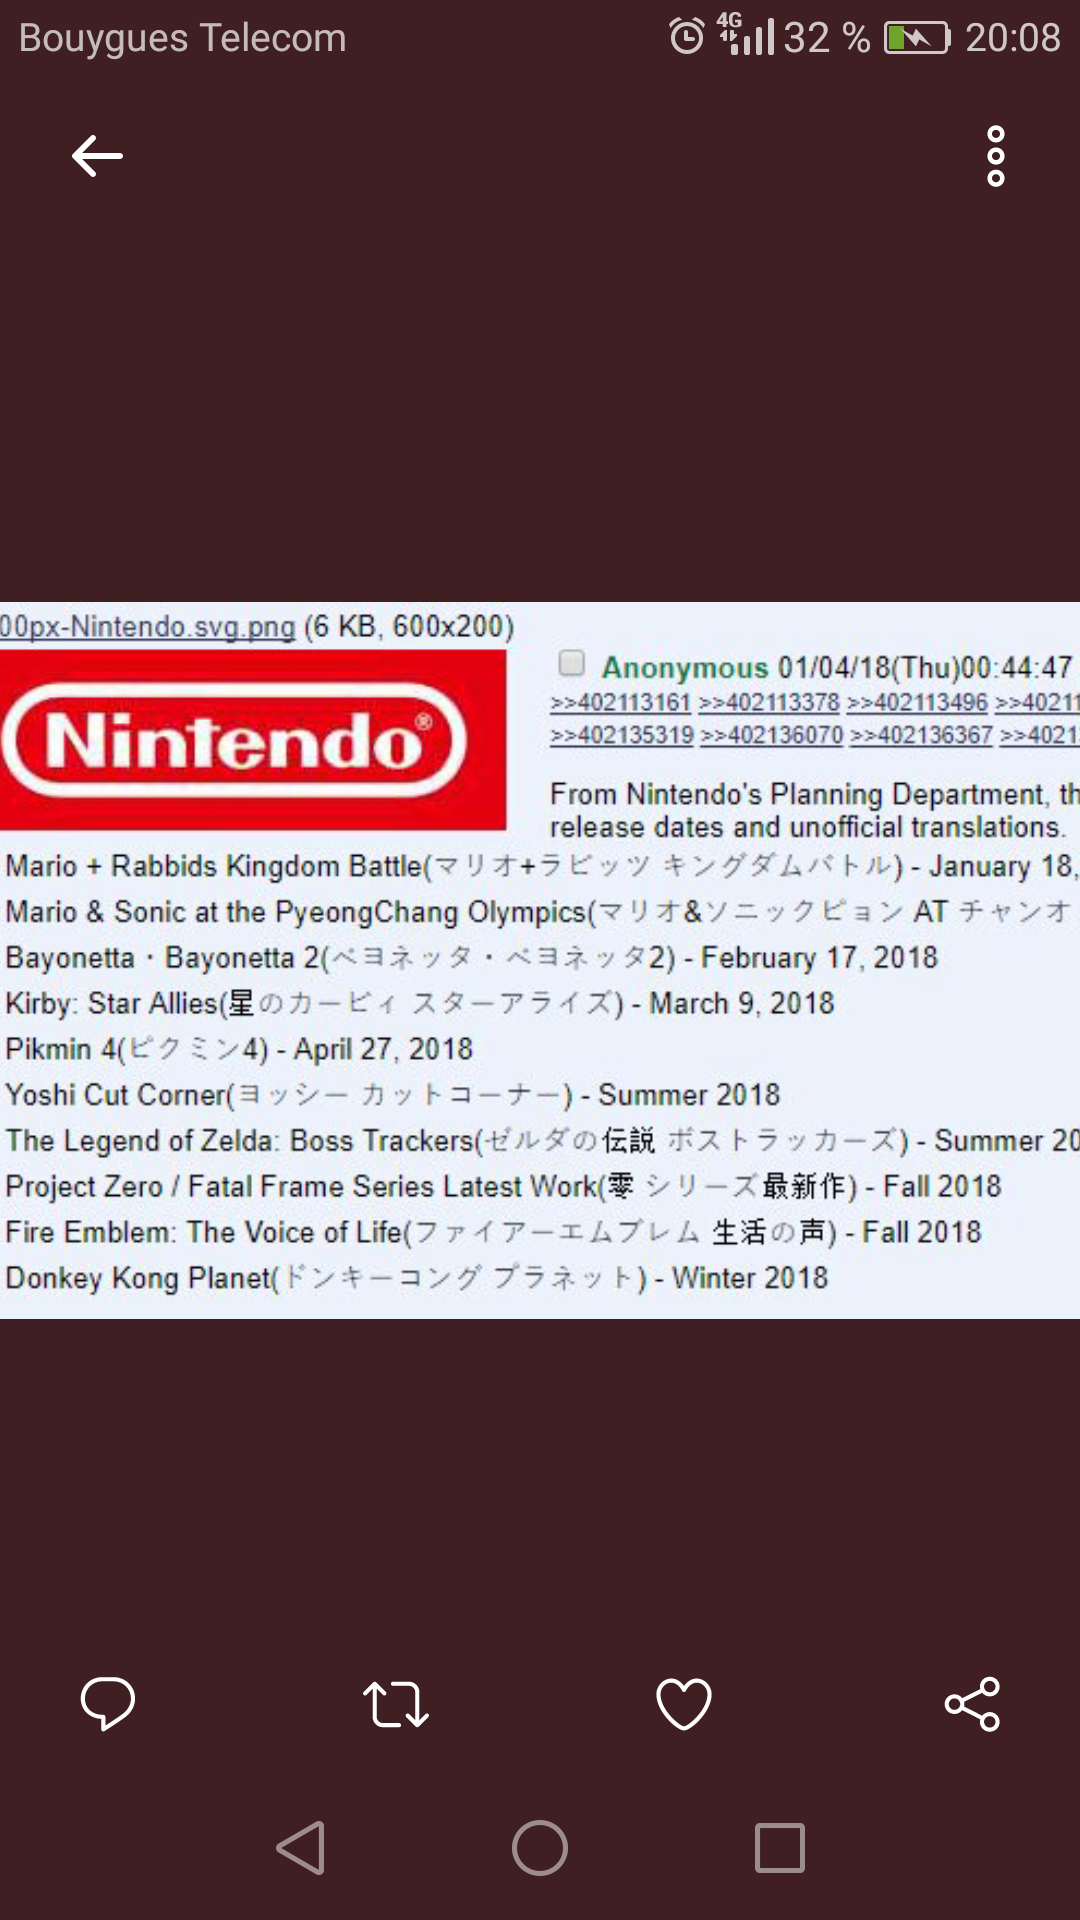 Nintendo Direct de janvier - Page 3 1515092983-screenshot-2018-01-04-20-08-07